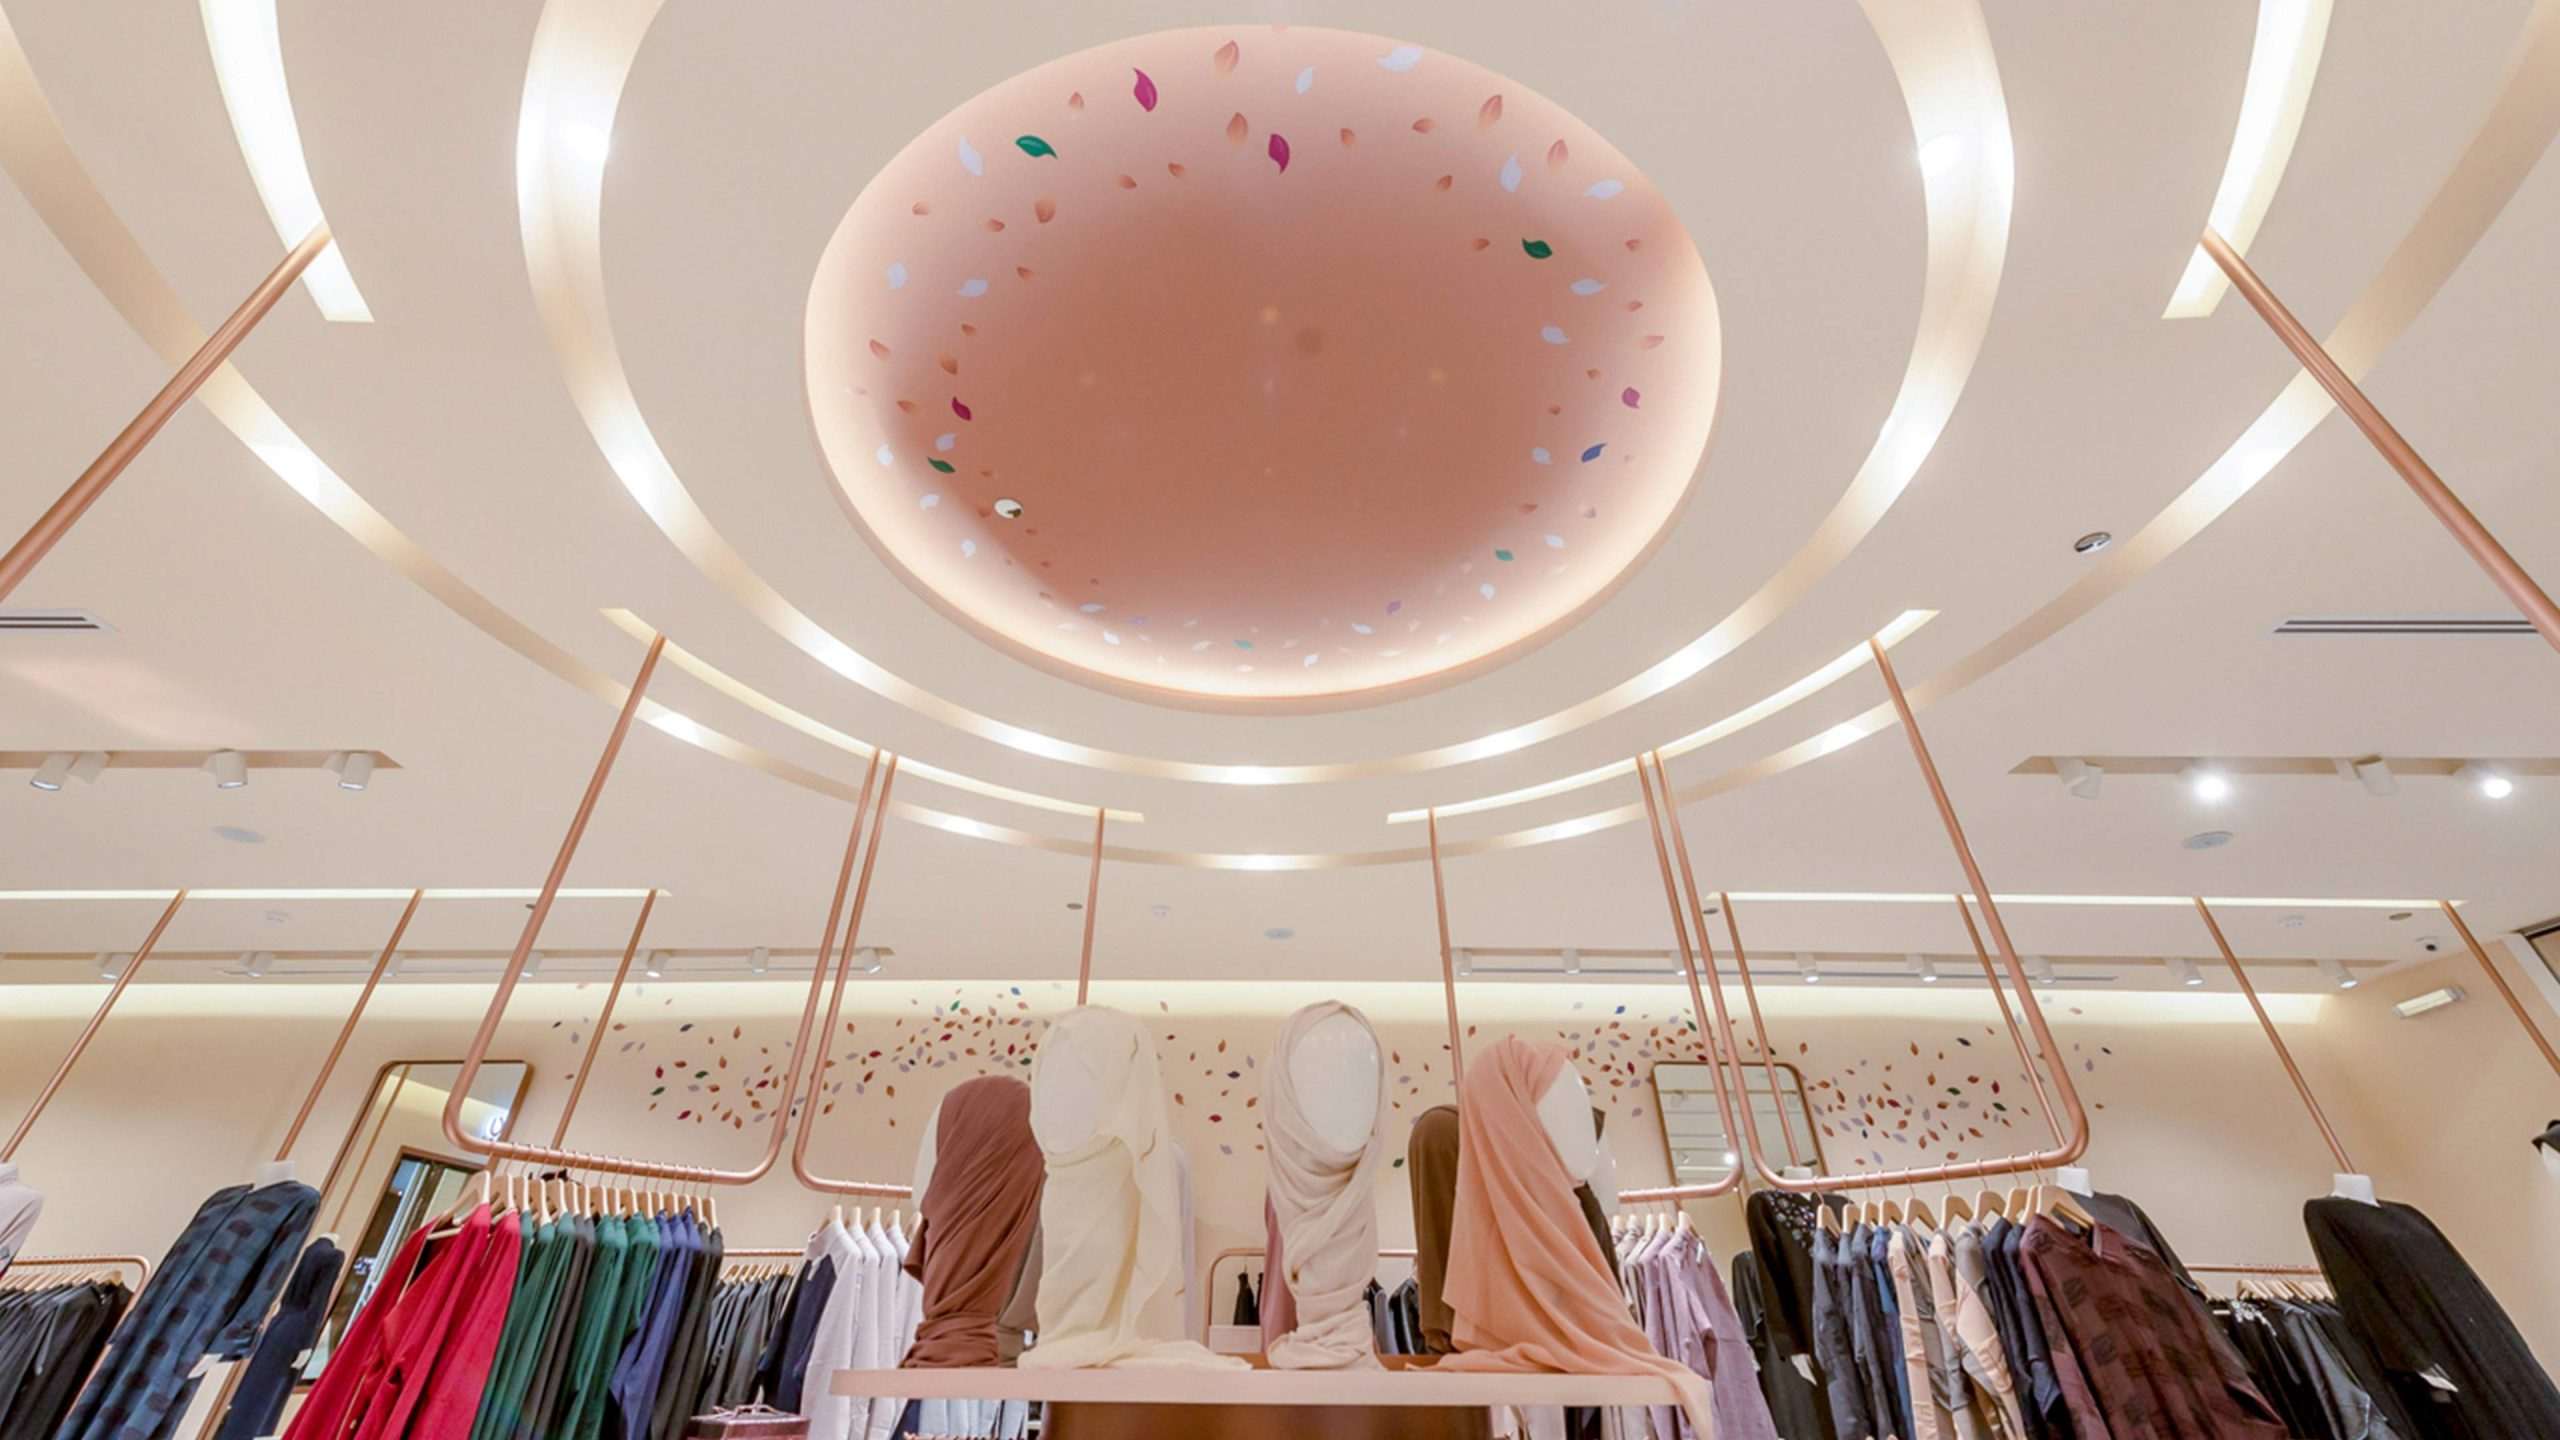 Architectural Lighting Design Contemporary Retail Store Concentric Illuminated Ceiling Feature Moda by Nayomi Store Jeddah Consultants Studio N